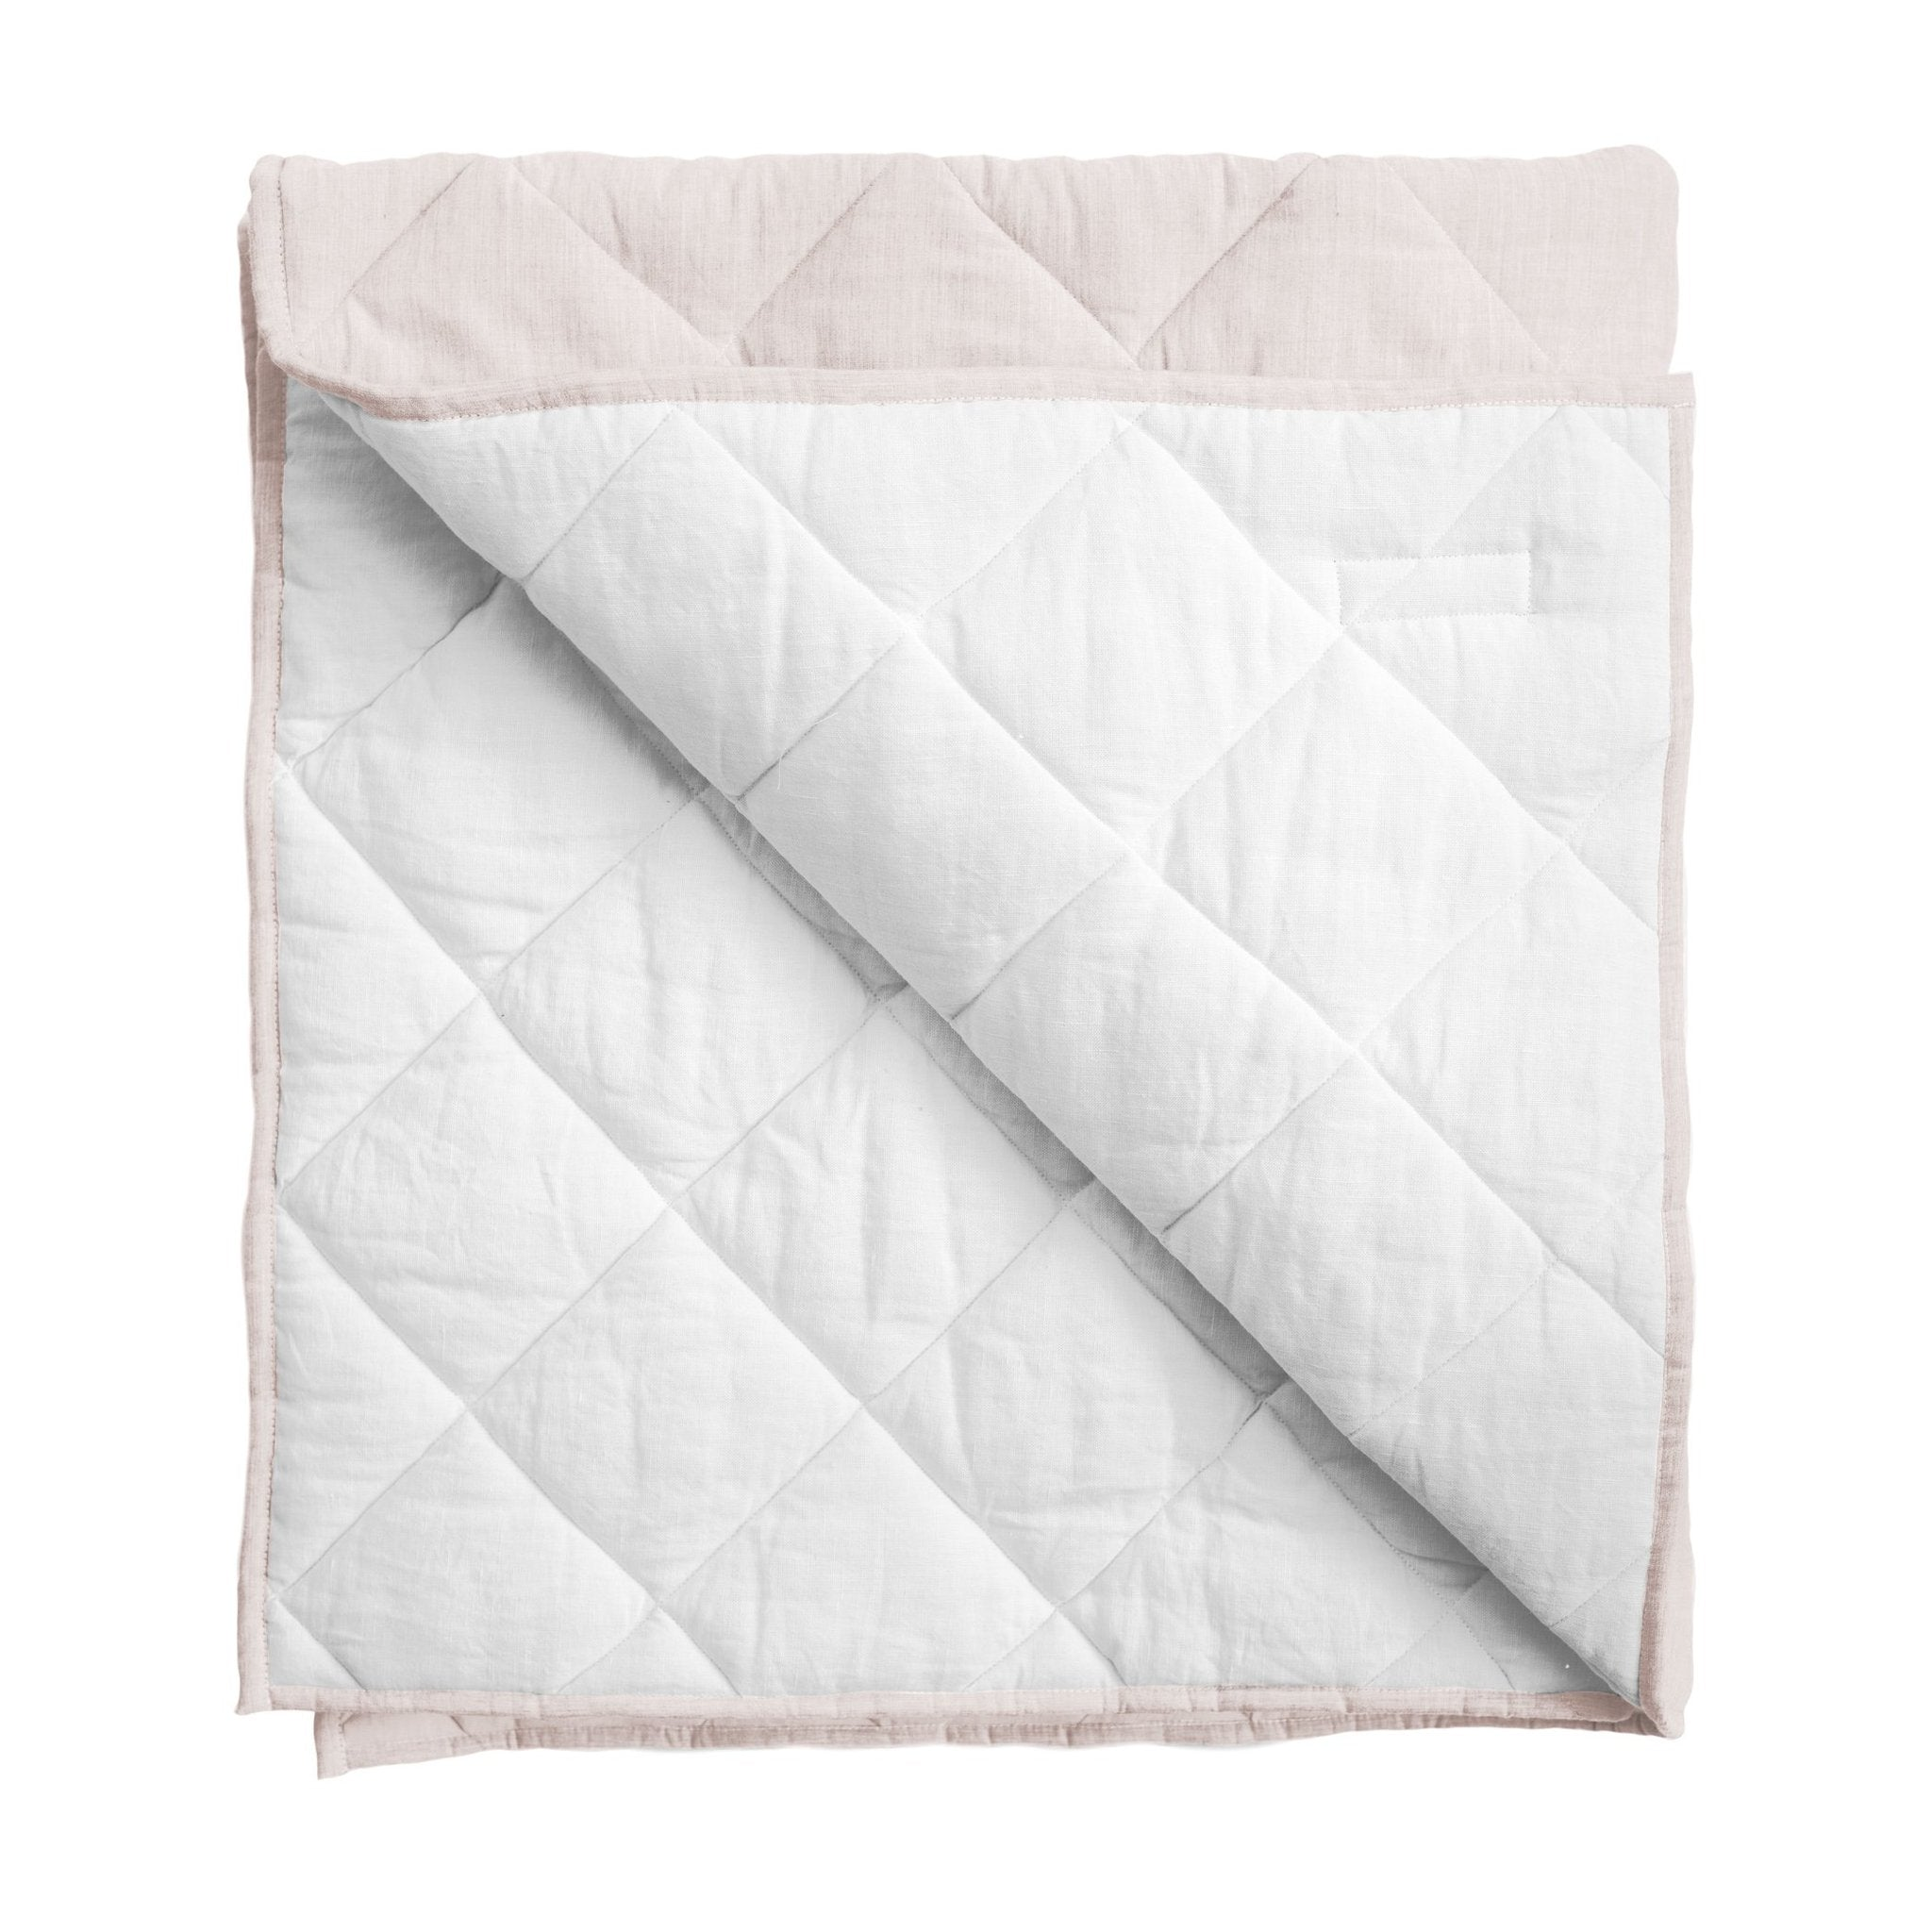 Play mat / Quilt | Blossom pink and white linen, reversible * Pre order - Shipping Jan-Feb 2021